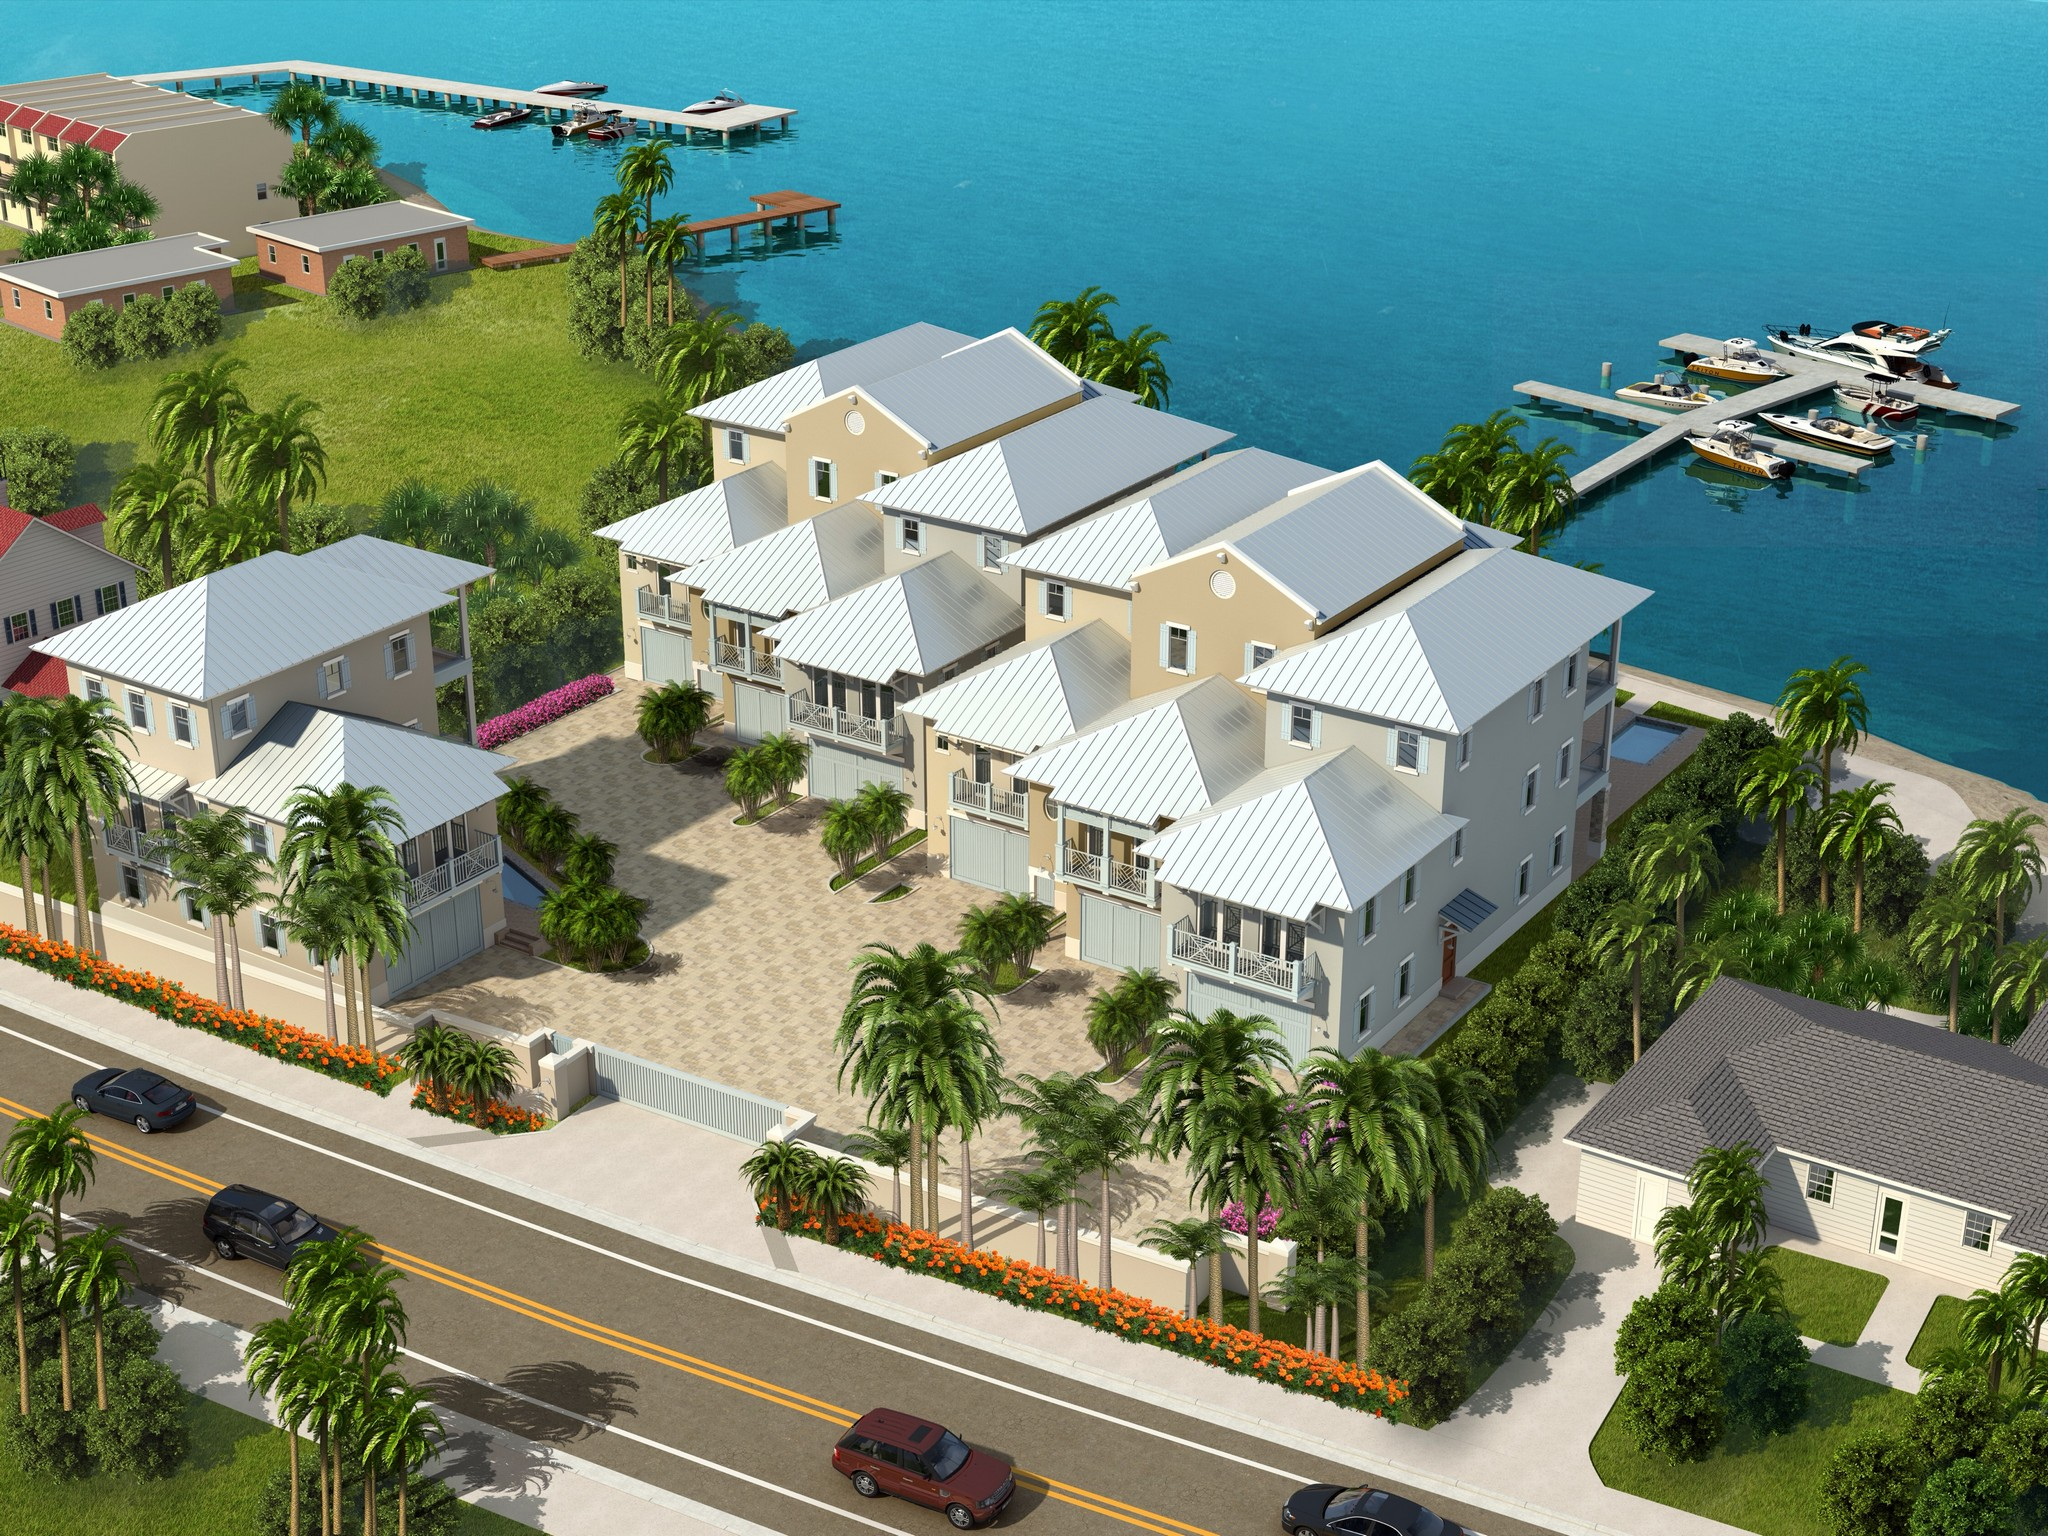 Moradia em banda para Venda às Riverfront Ultra-luxury townhome 1502 Seaway Drive #1 Fort Pierce, Florida 34949 Estados Unidos